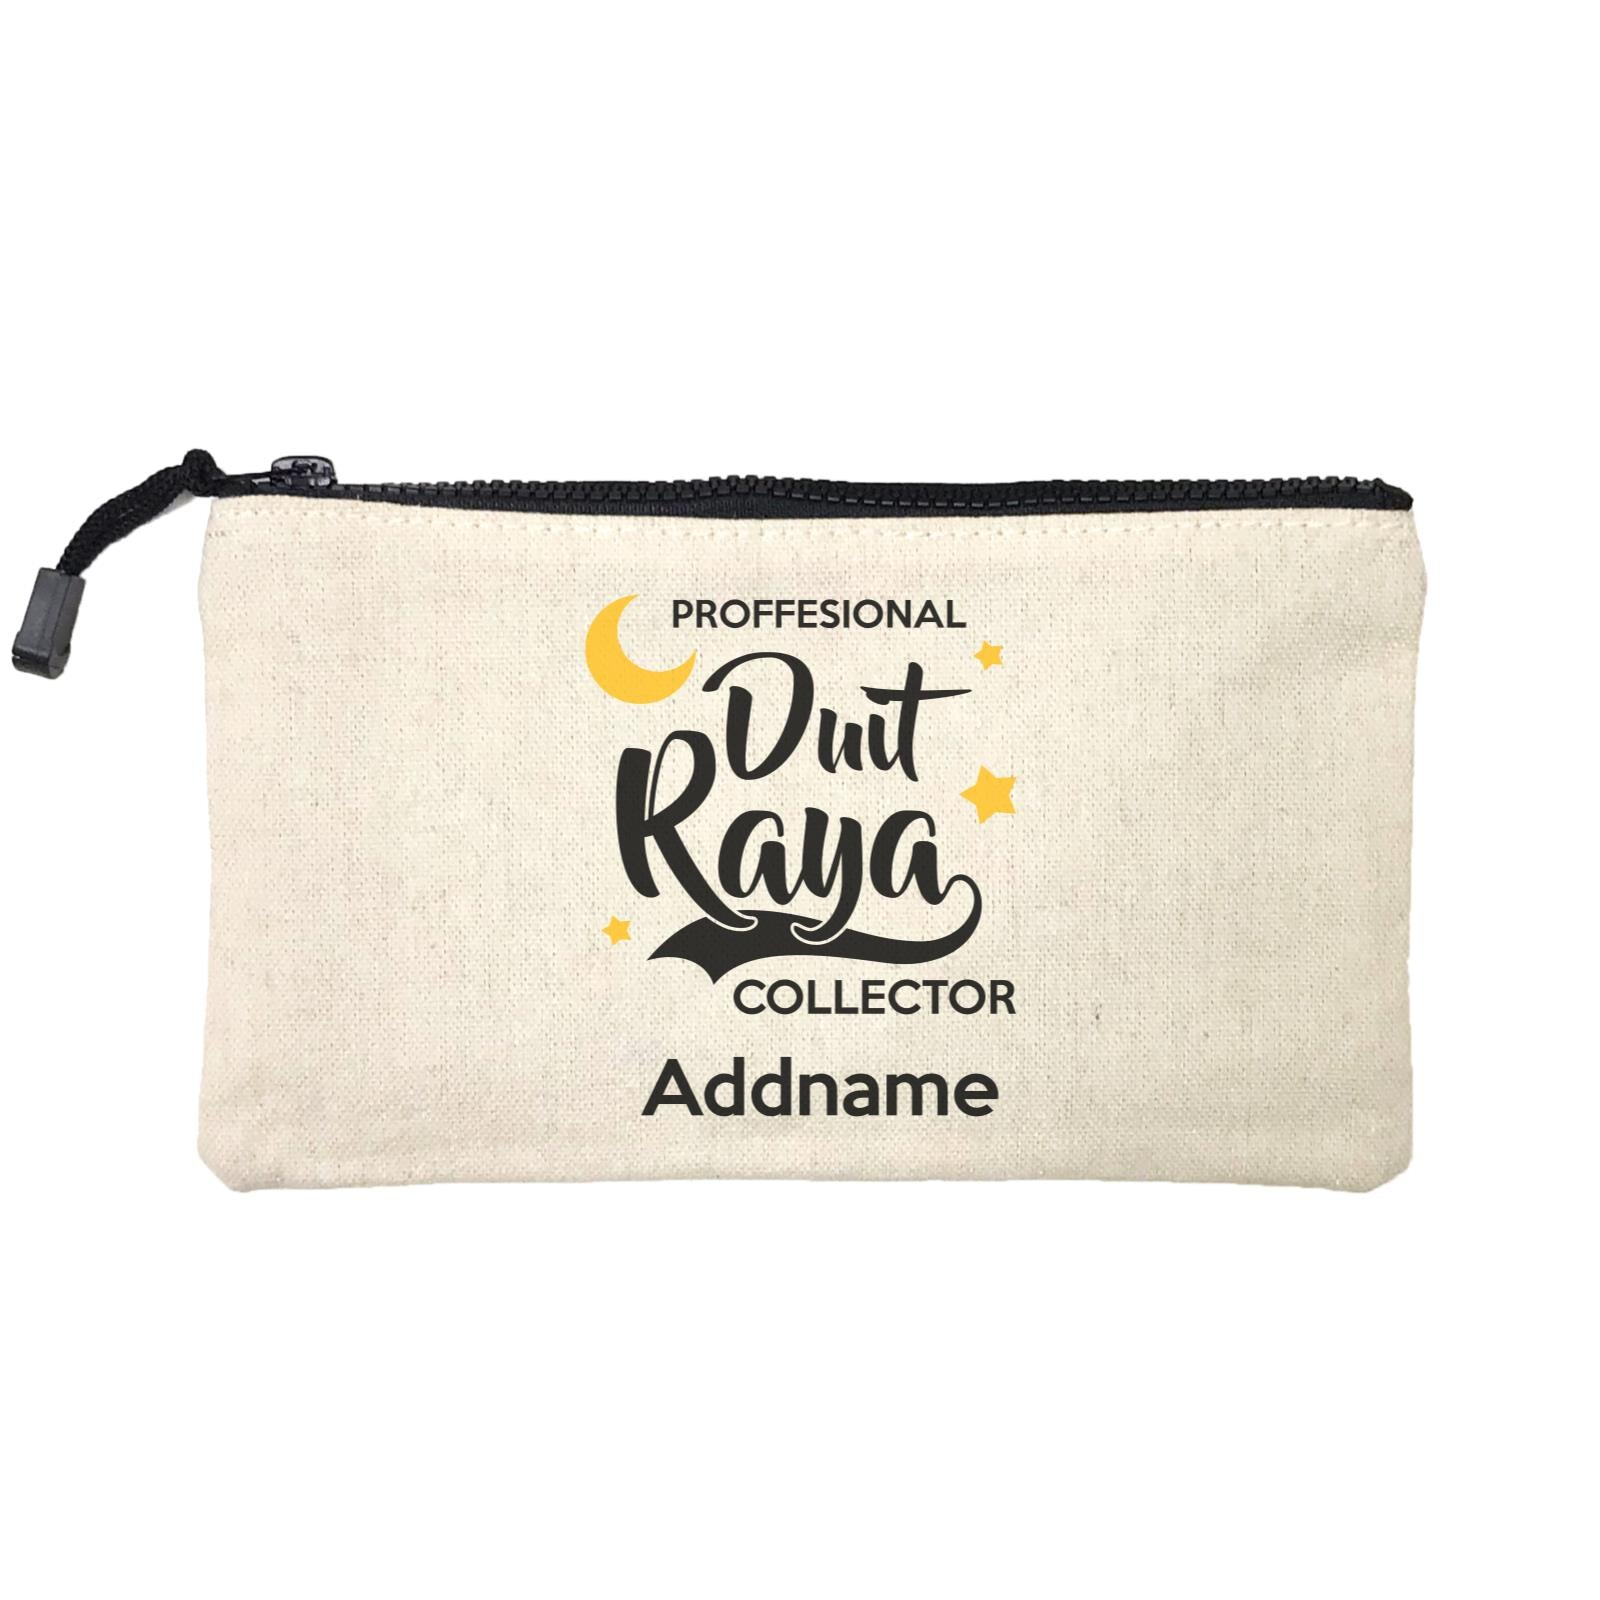 Raya Typography Professional Duit Raya Collector Addname Mini Accessories Stationery Pouch